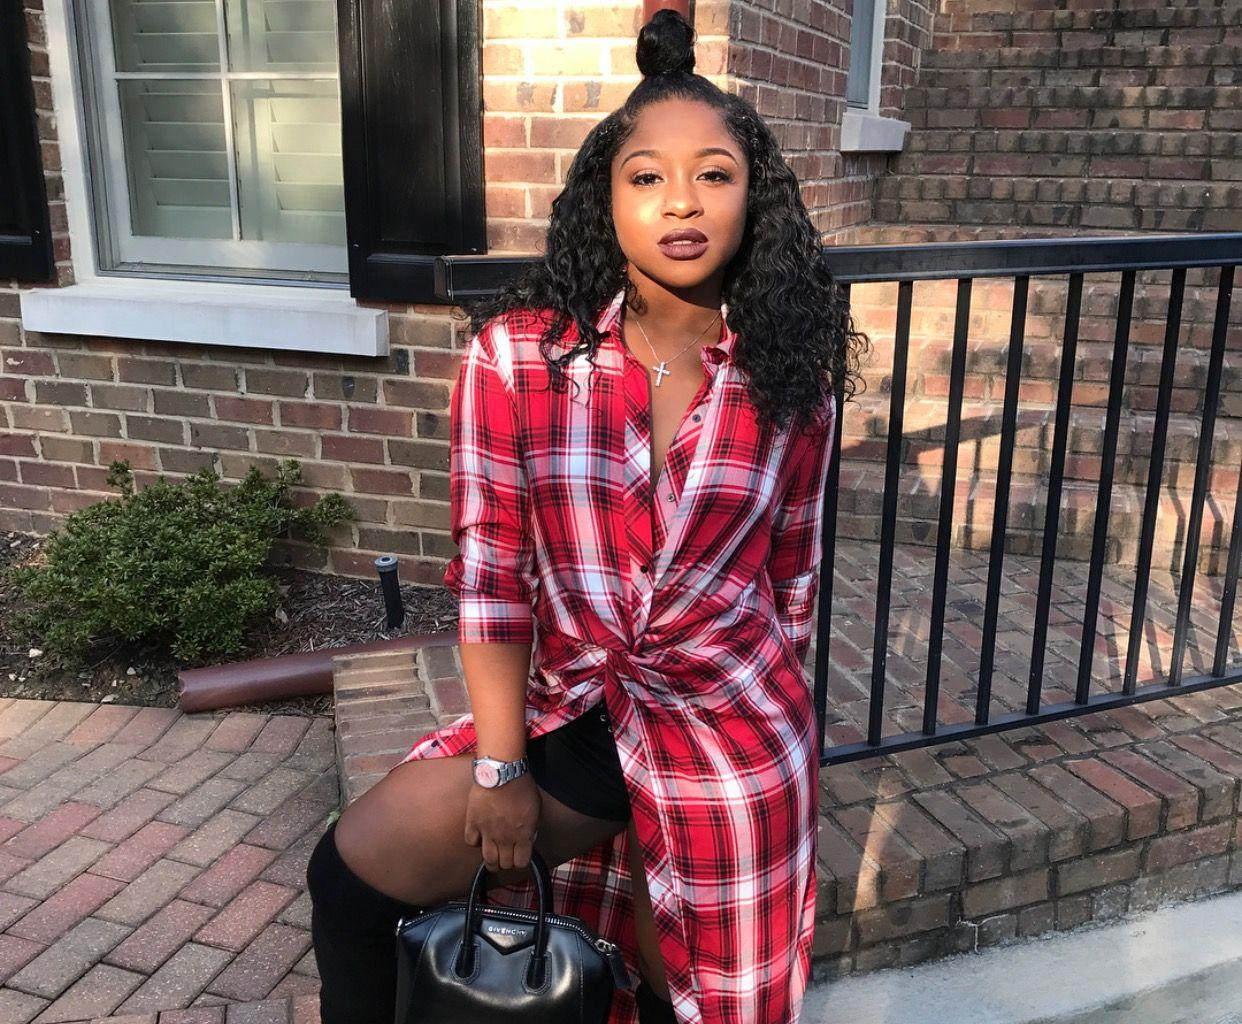 Reginae Carter Flaunts Her Toned Body On A Boat In Spain While YFN Lucci Is Hateful On Social Media